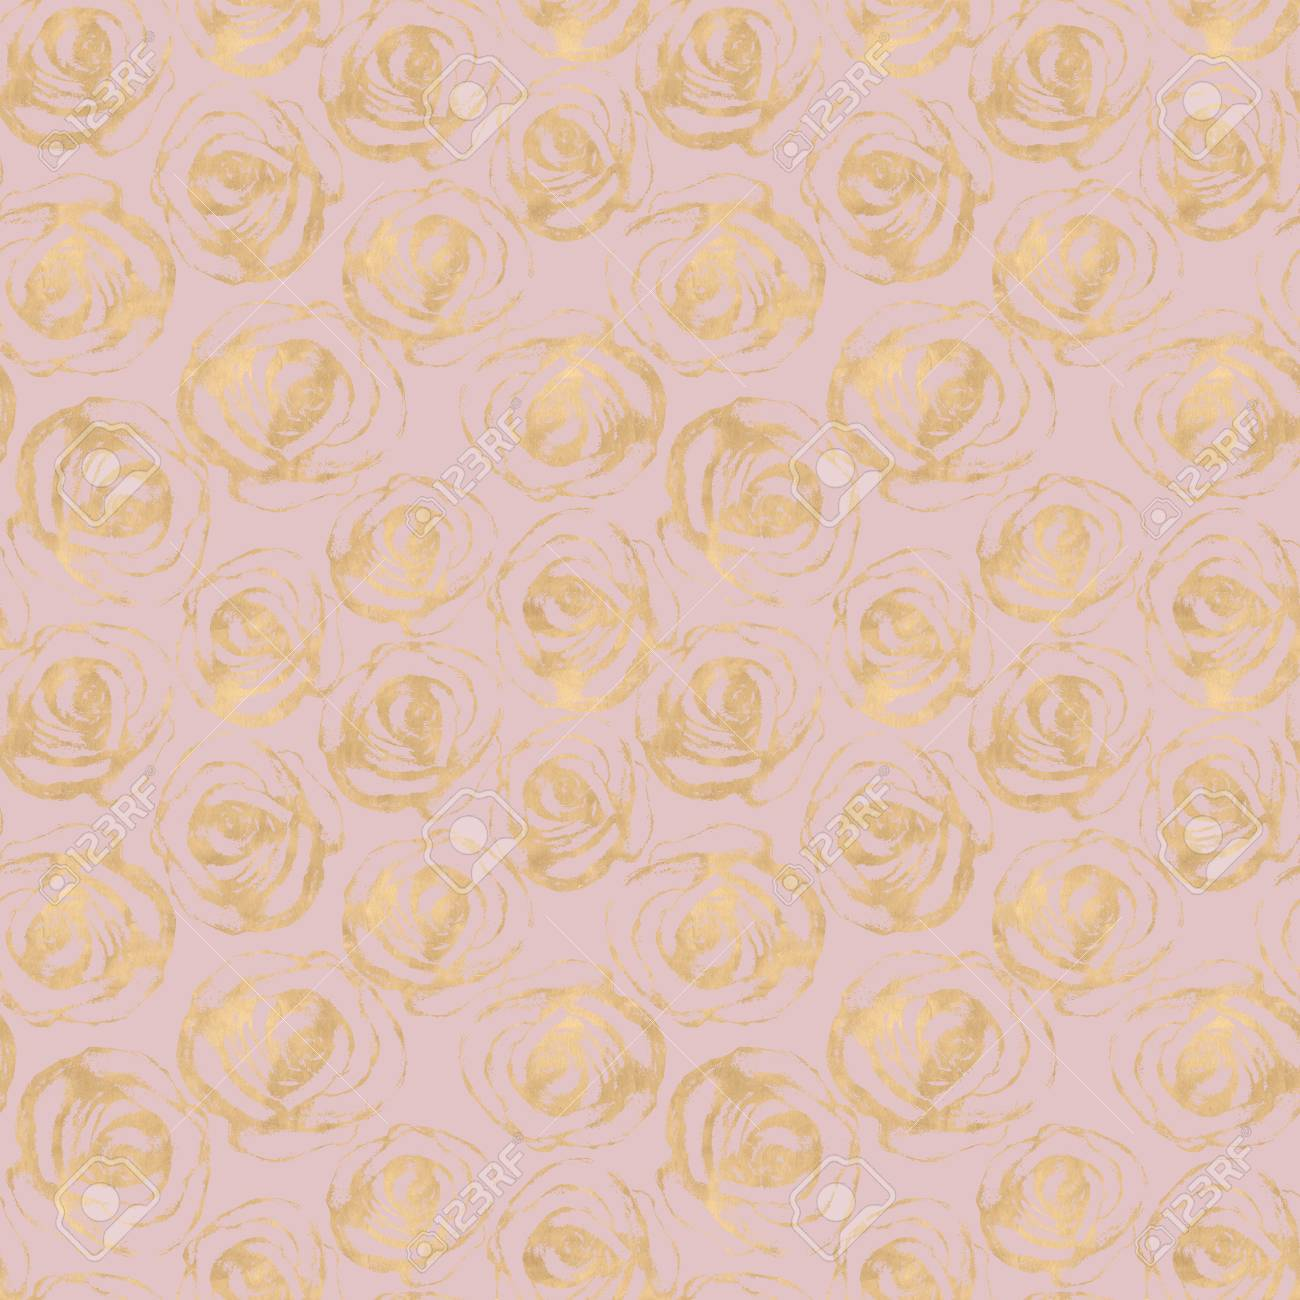 Rose Flowers Abstract Glitter Gold Seamless Pattern Luxury Yellow